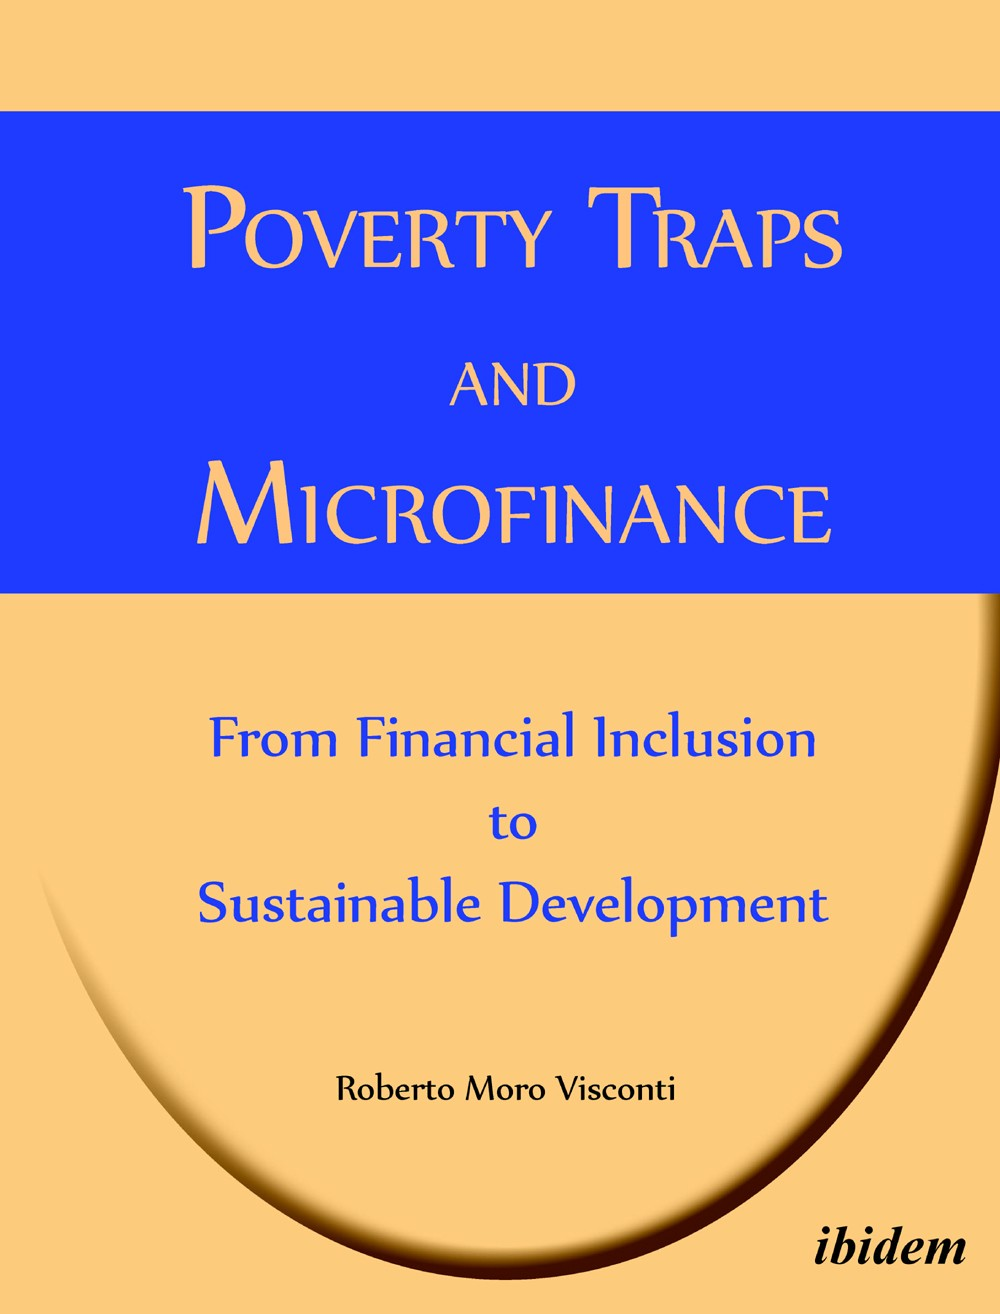 Poverty Traps and Microfinance: From Financial Inclusion to Sustainable Development